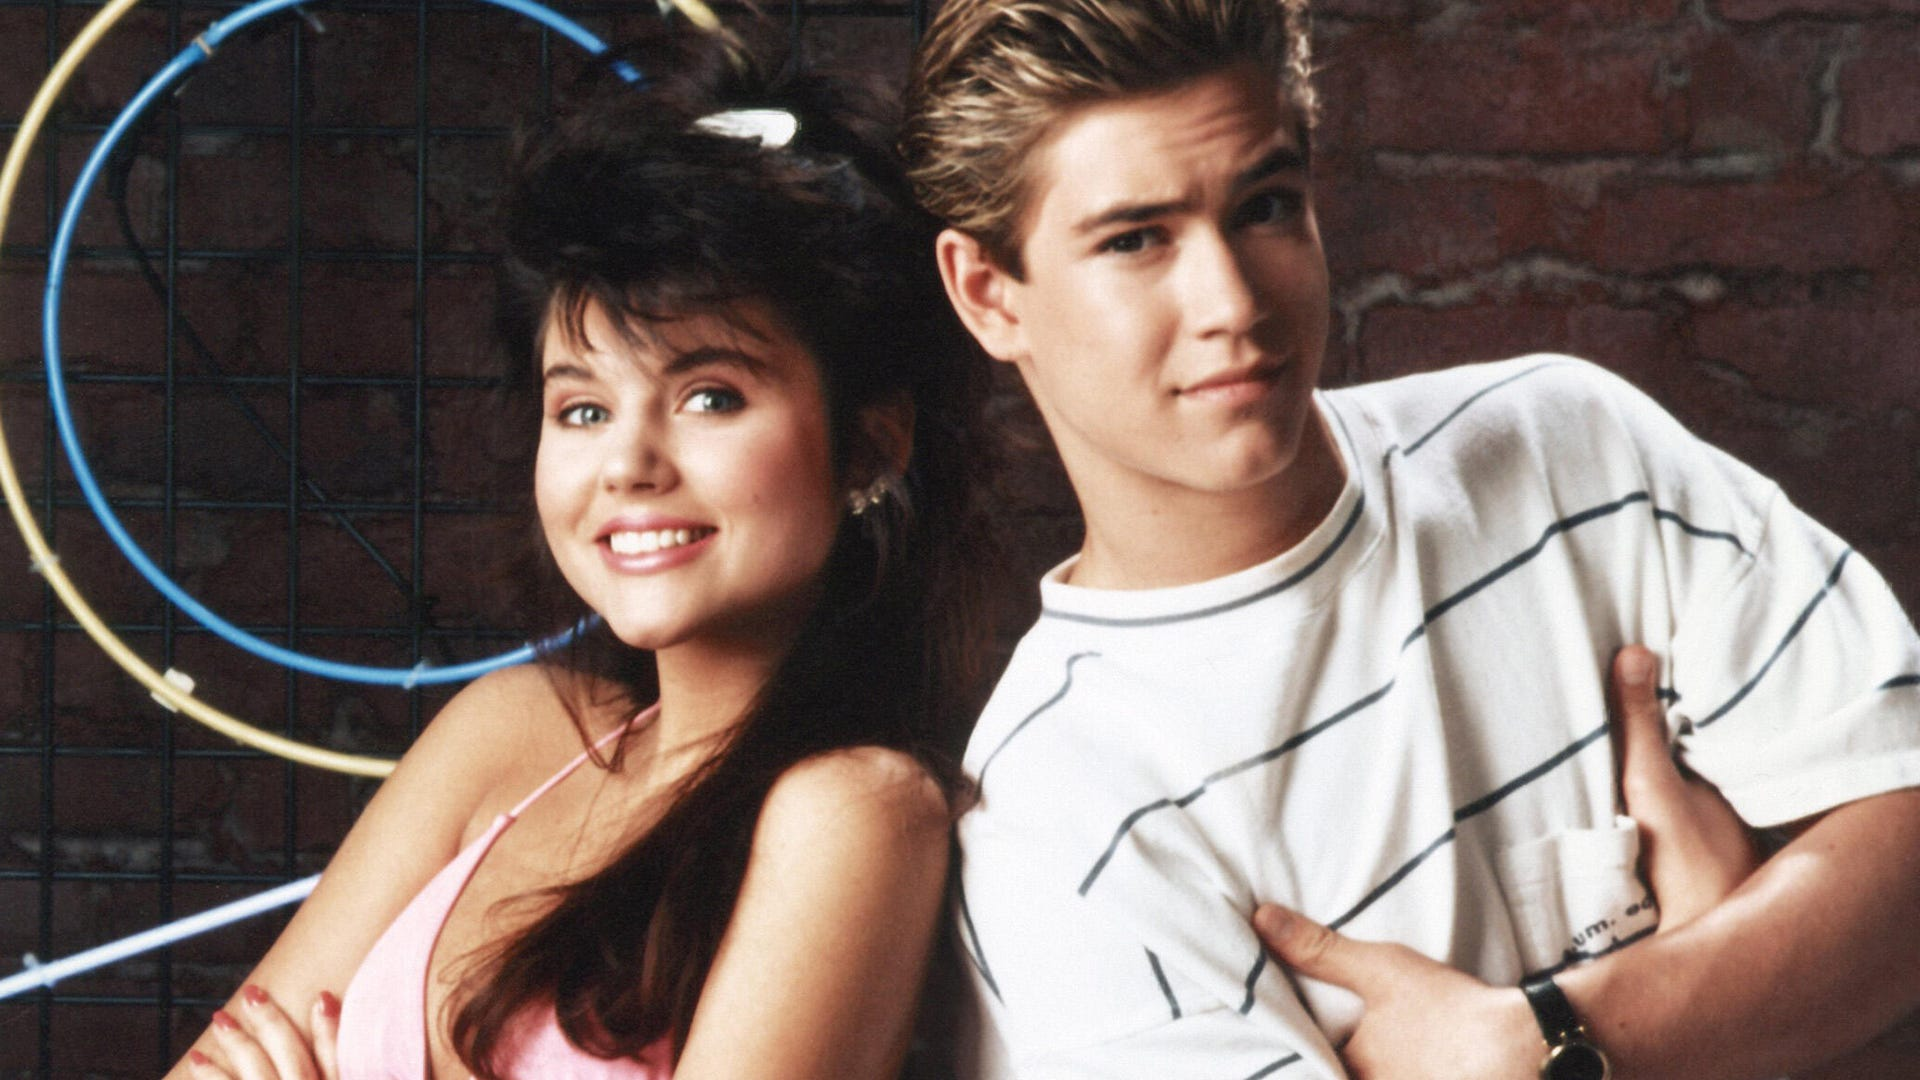 Tiffany Thiessen and Mark-Paul Gosselaar, Saved by the Bell